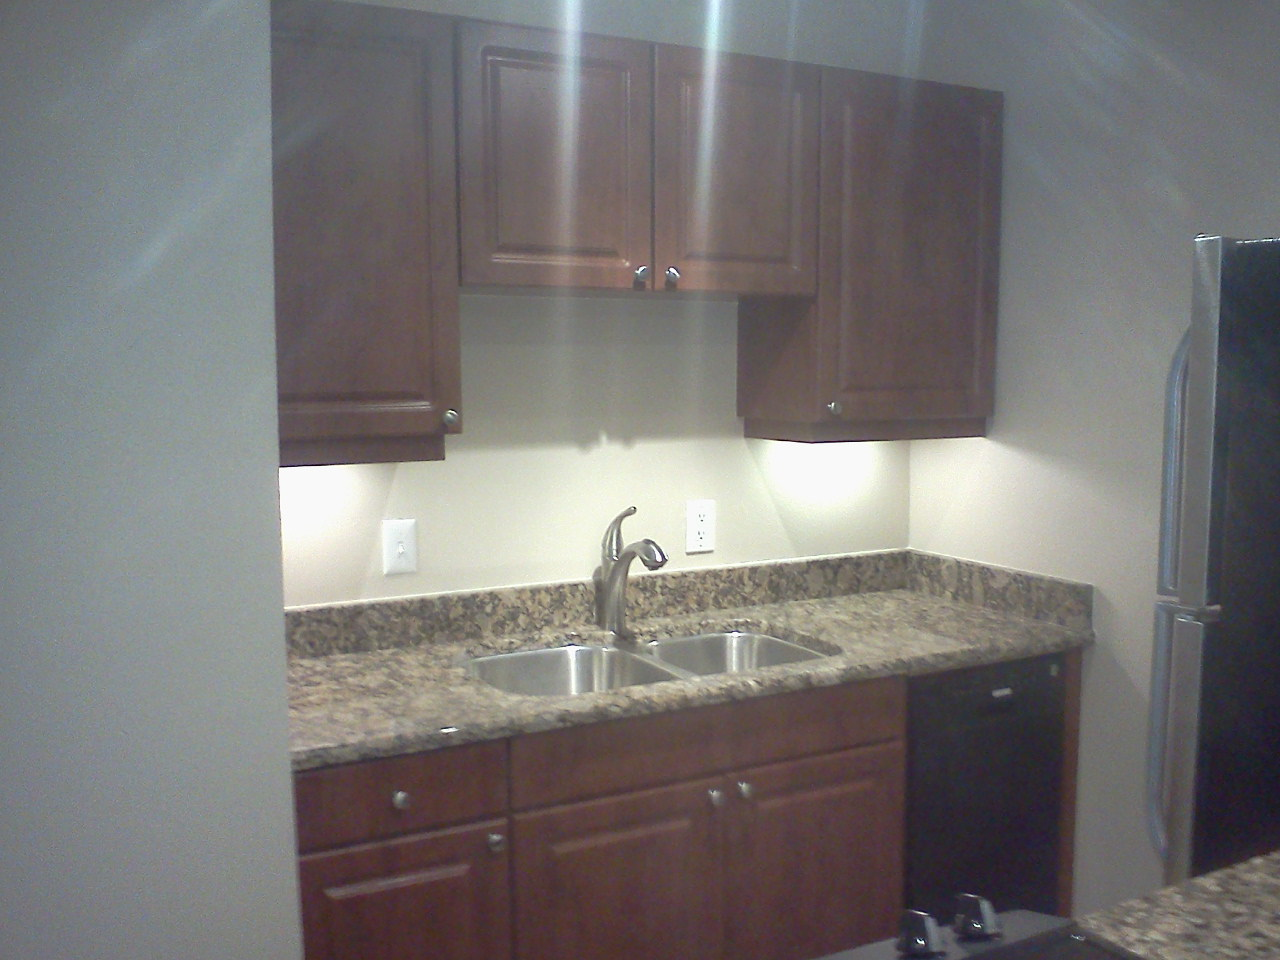 Kitchen Interior at the WestShore Apartments in Tampa, FL